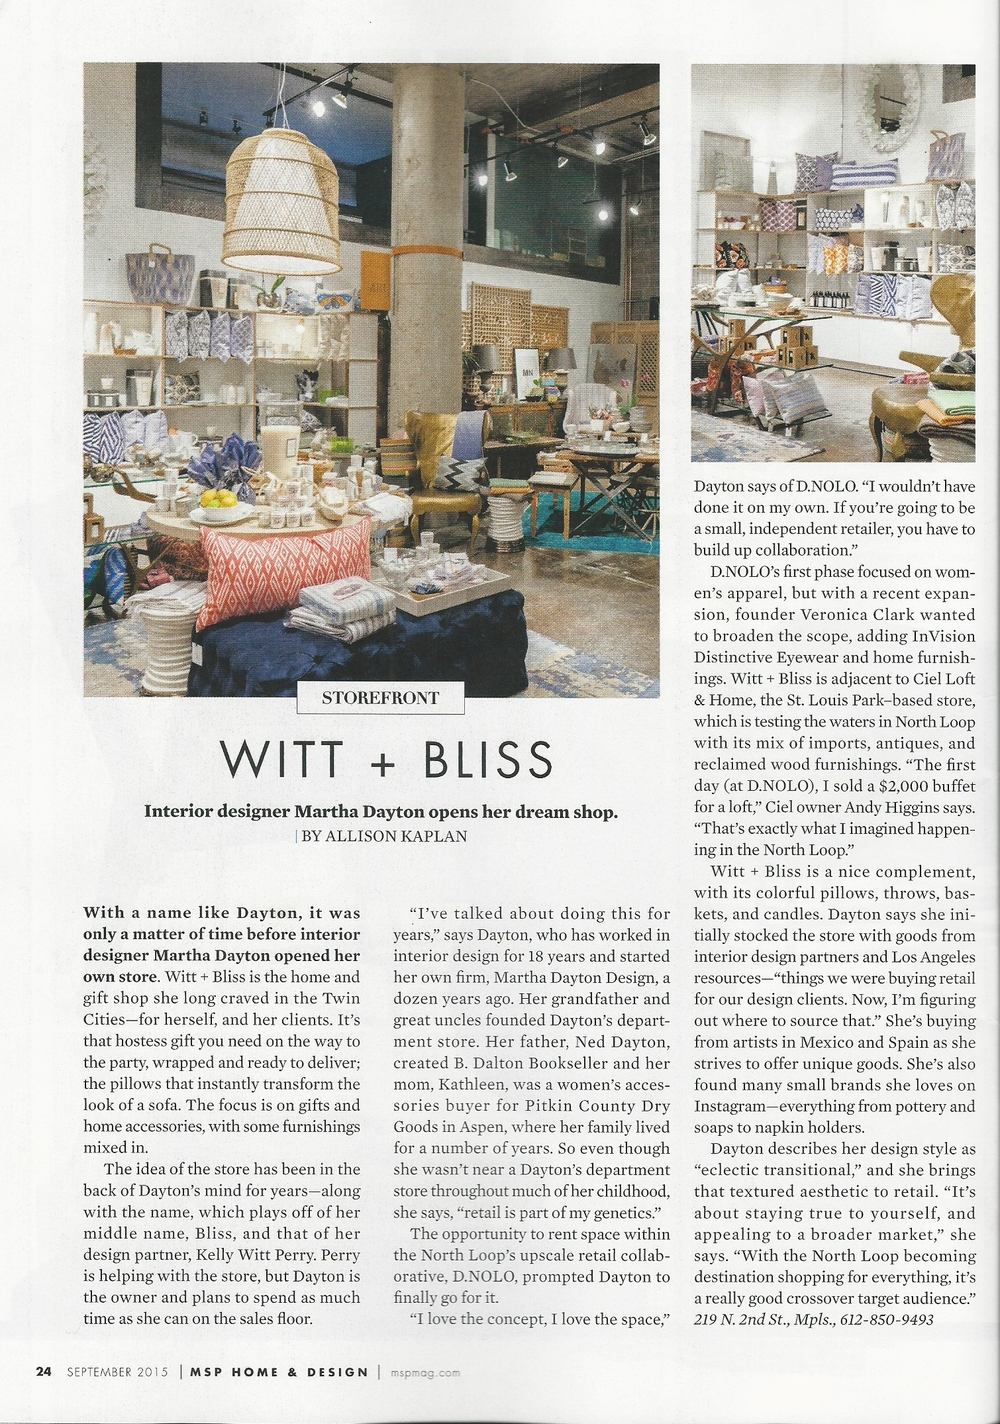 Witt + Bliss in Minneapolis St. Paul Magazine Home & Design - September 2015